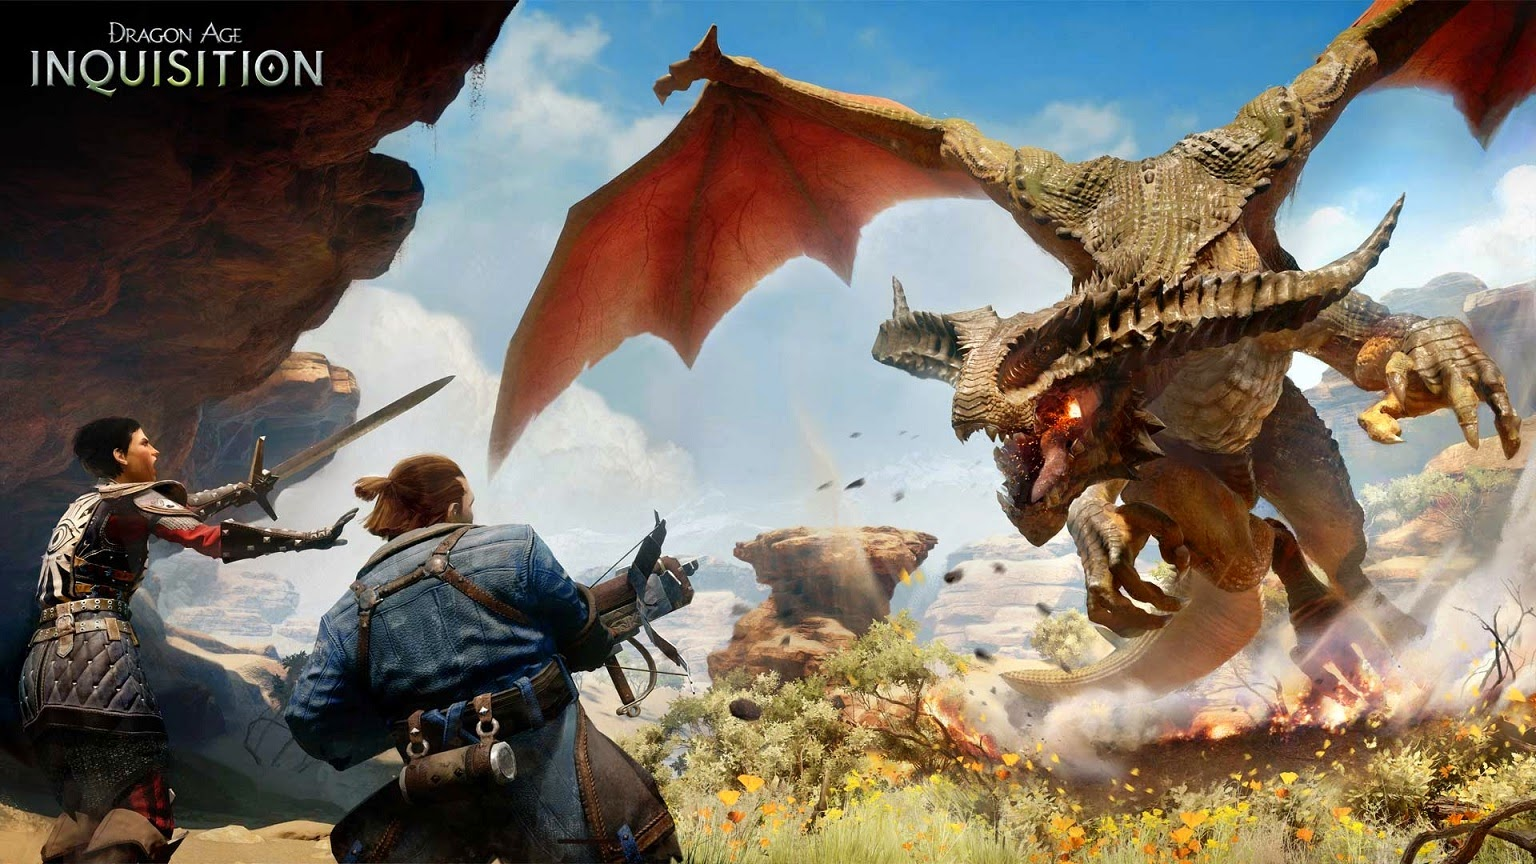 artwork Dragon Age Inquisition concept art